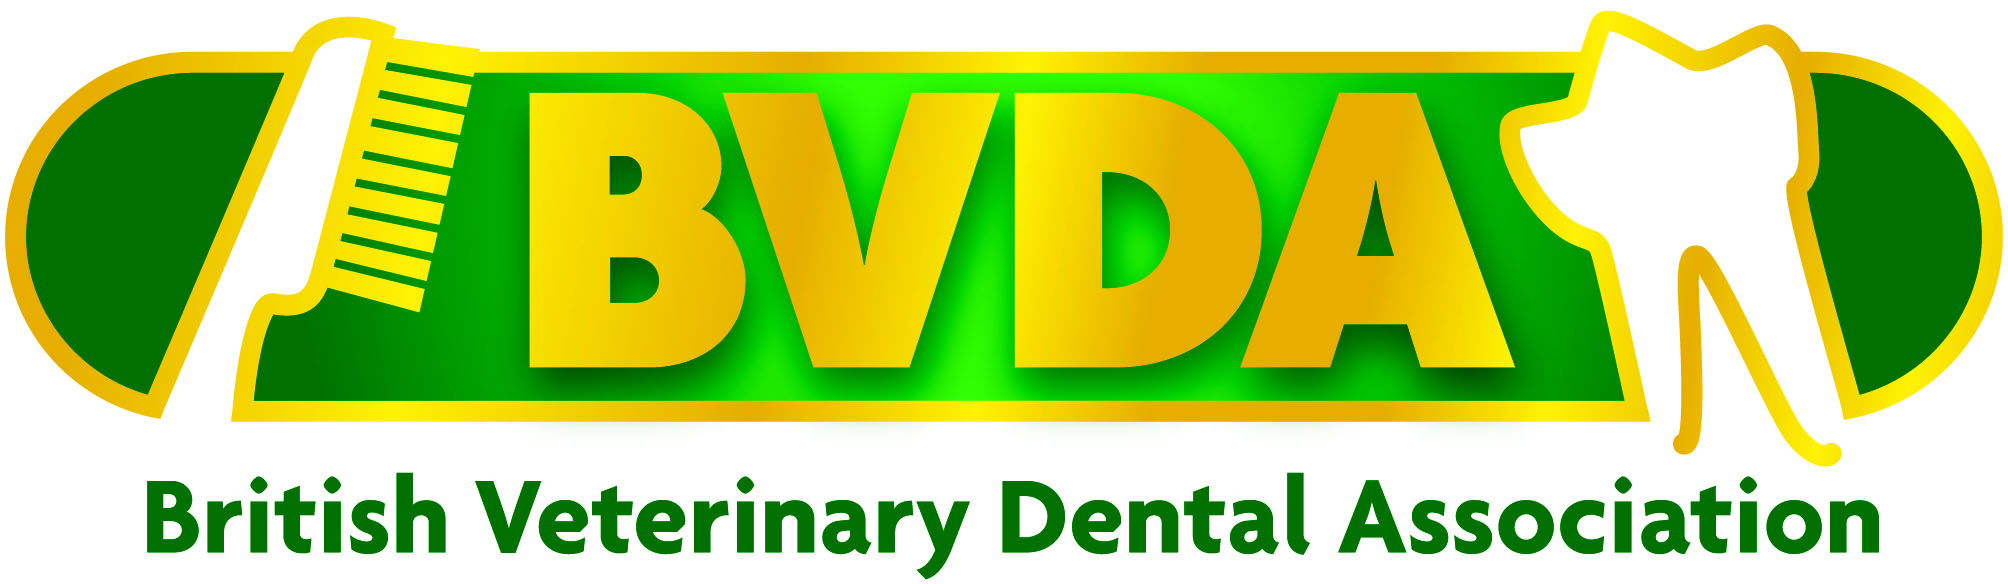 BVDA logo new colour copy - Copy